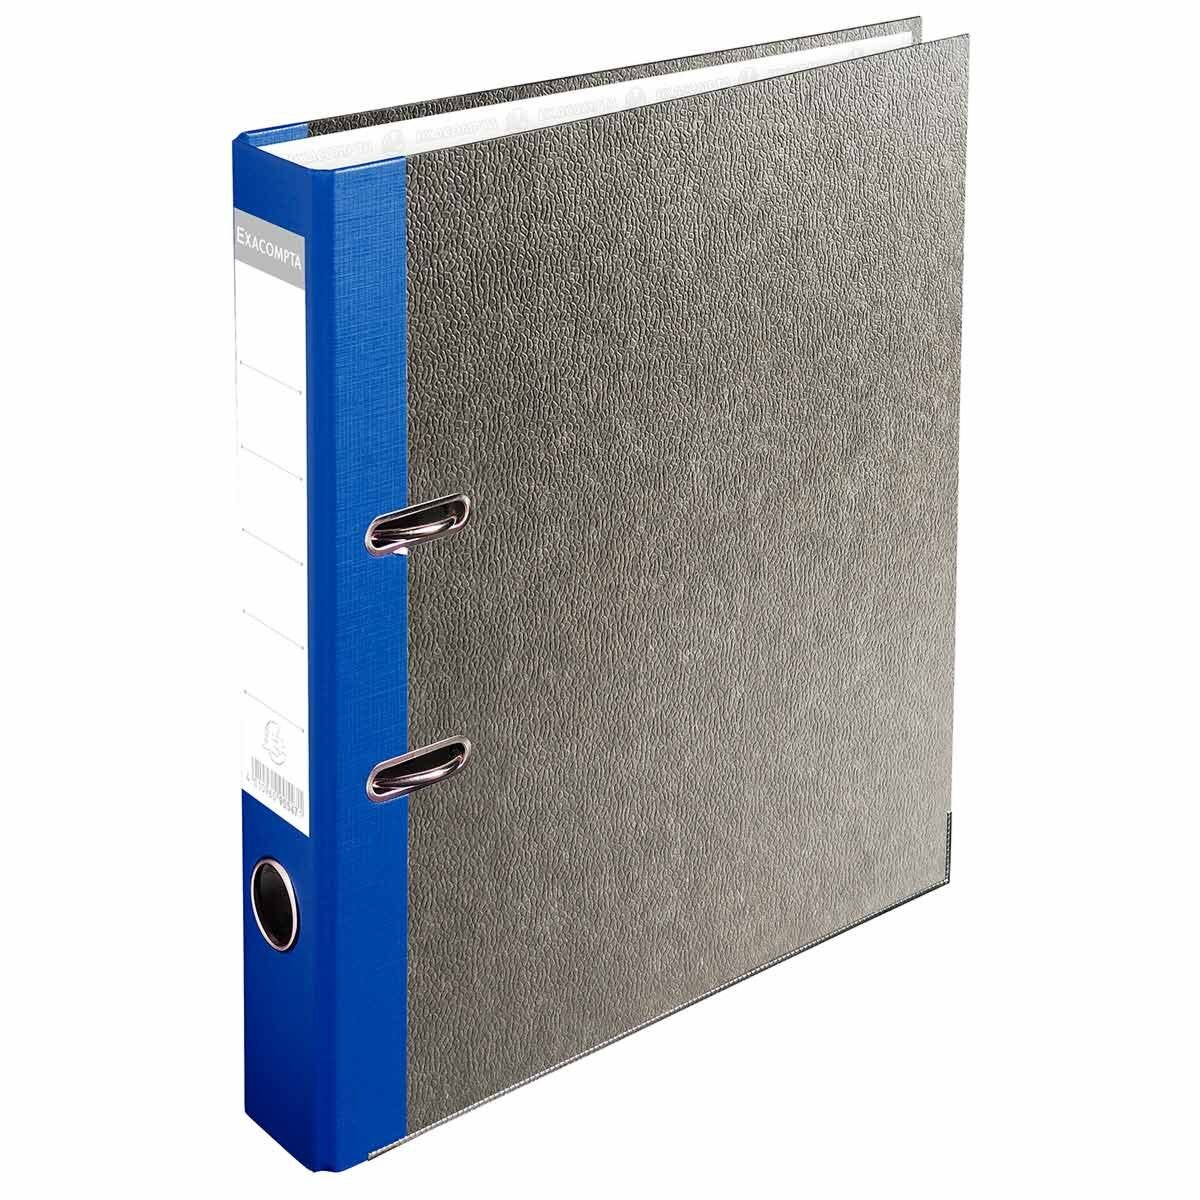 Exacompta PremTouch Lever Arch File A4 50mm Marbled Grey Pack of 20 Blue